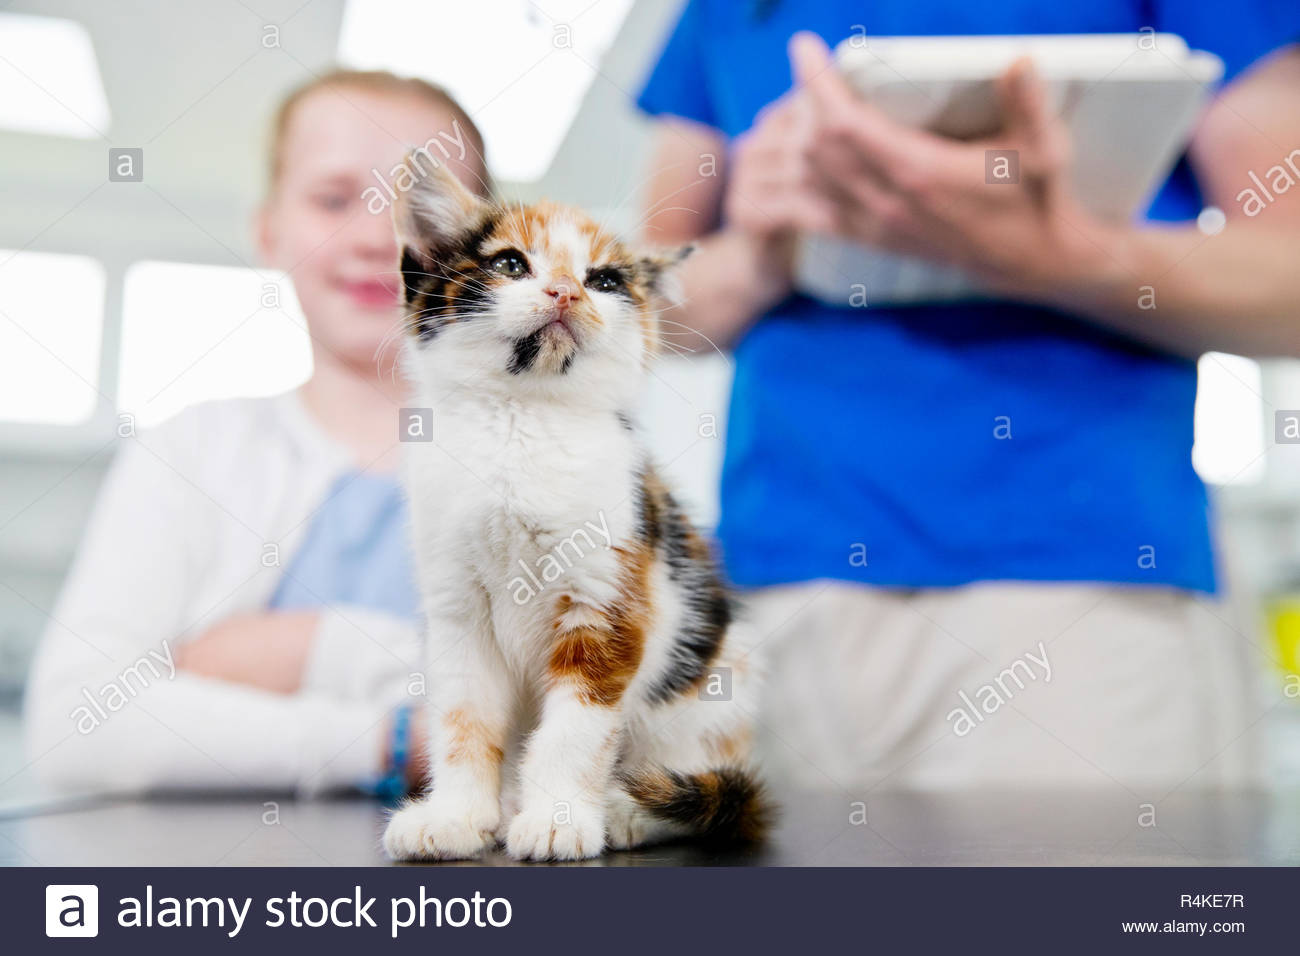 Vet with pet kitten cat on table in surgery with child owner - Stock Image